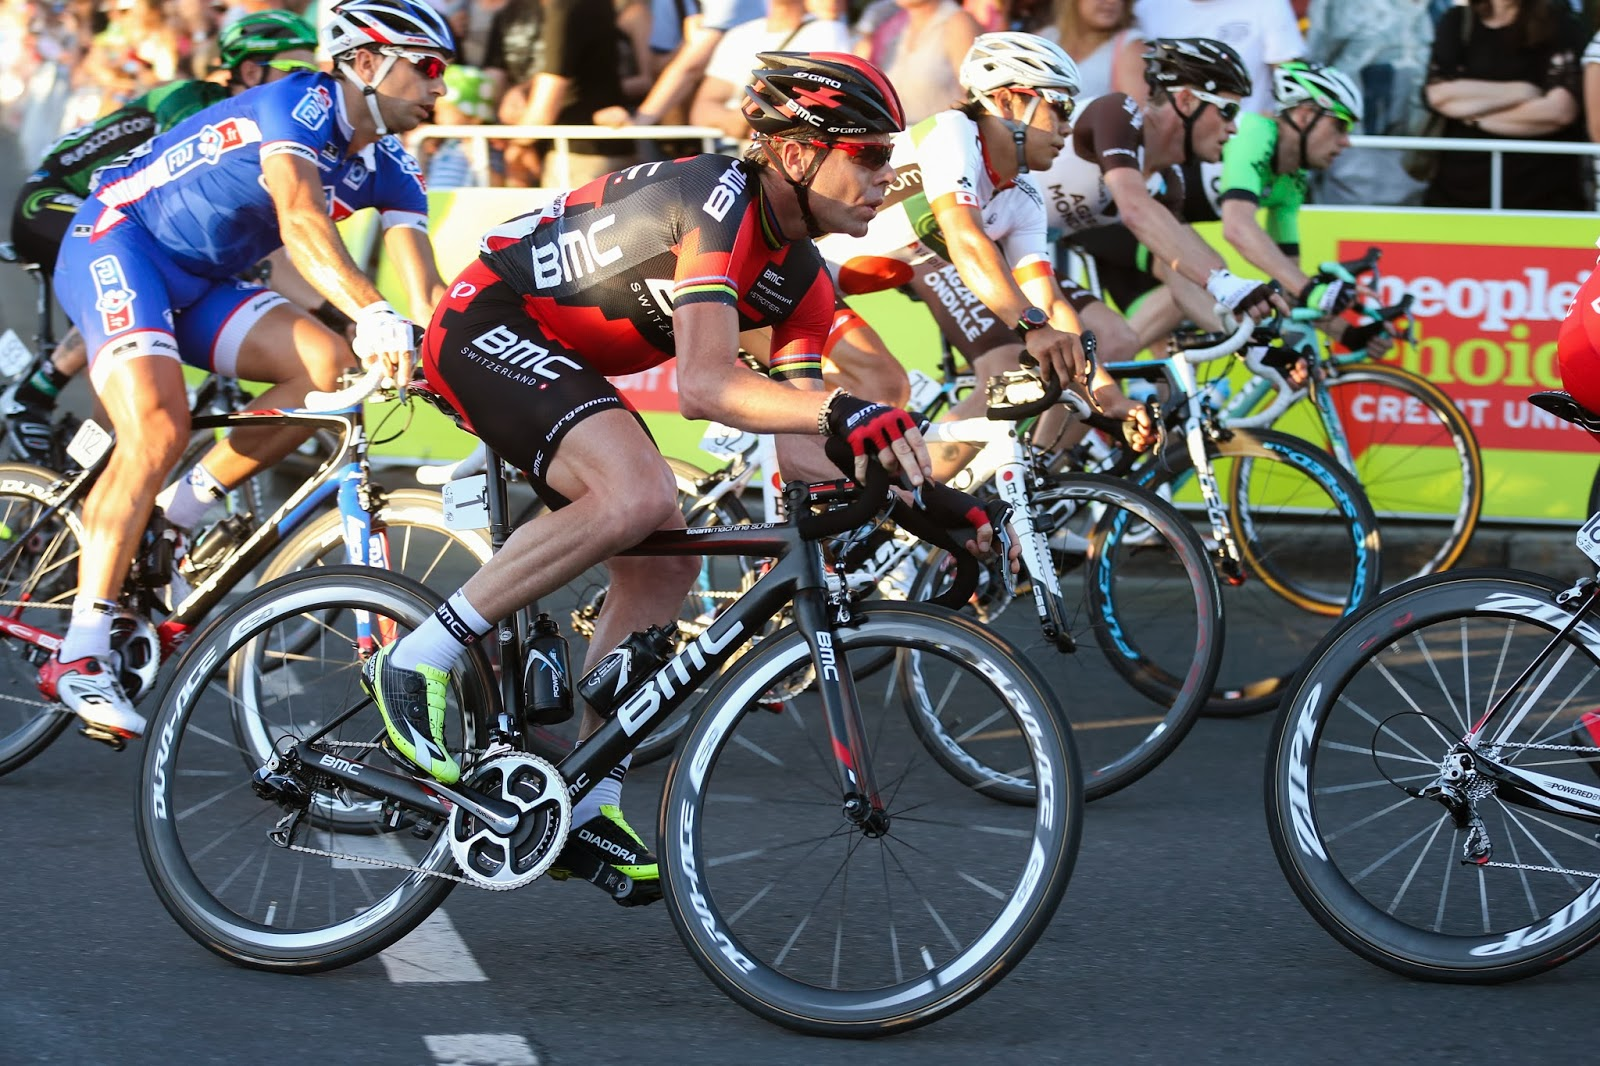 2014, Adelaide, Australia, Cadel Evans, Cycling, Down, Peloton, People's Choice, Race, Riders, Sky, Sports, Team, Tour, Under,